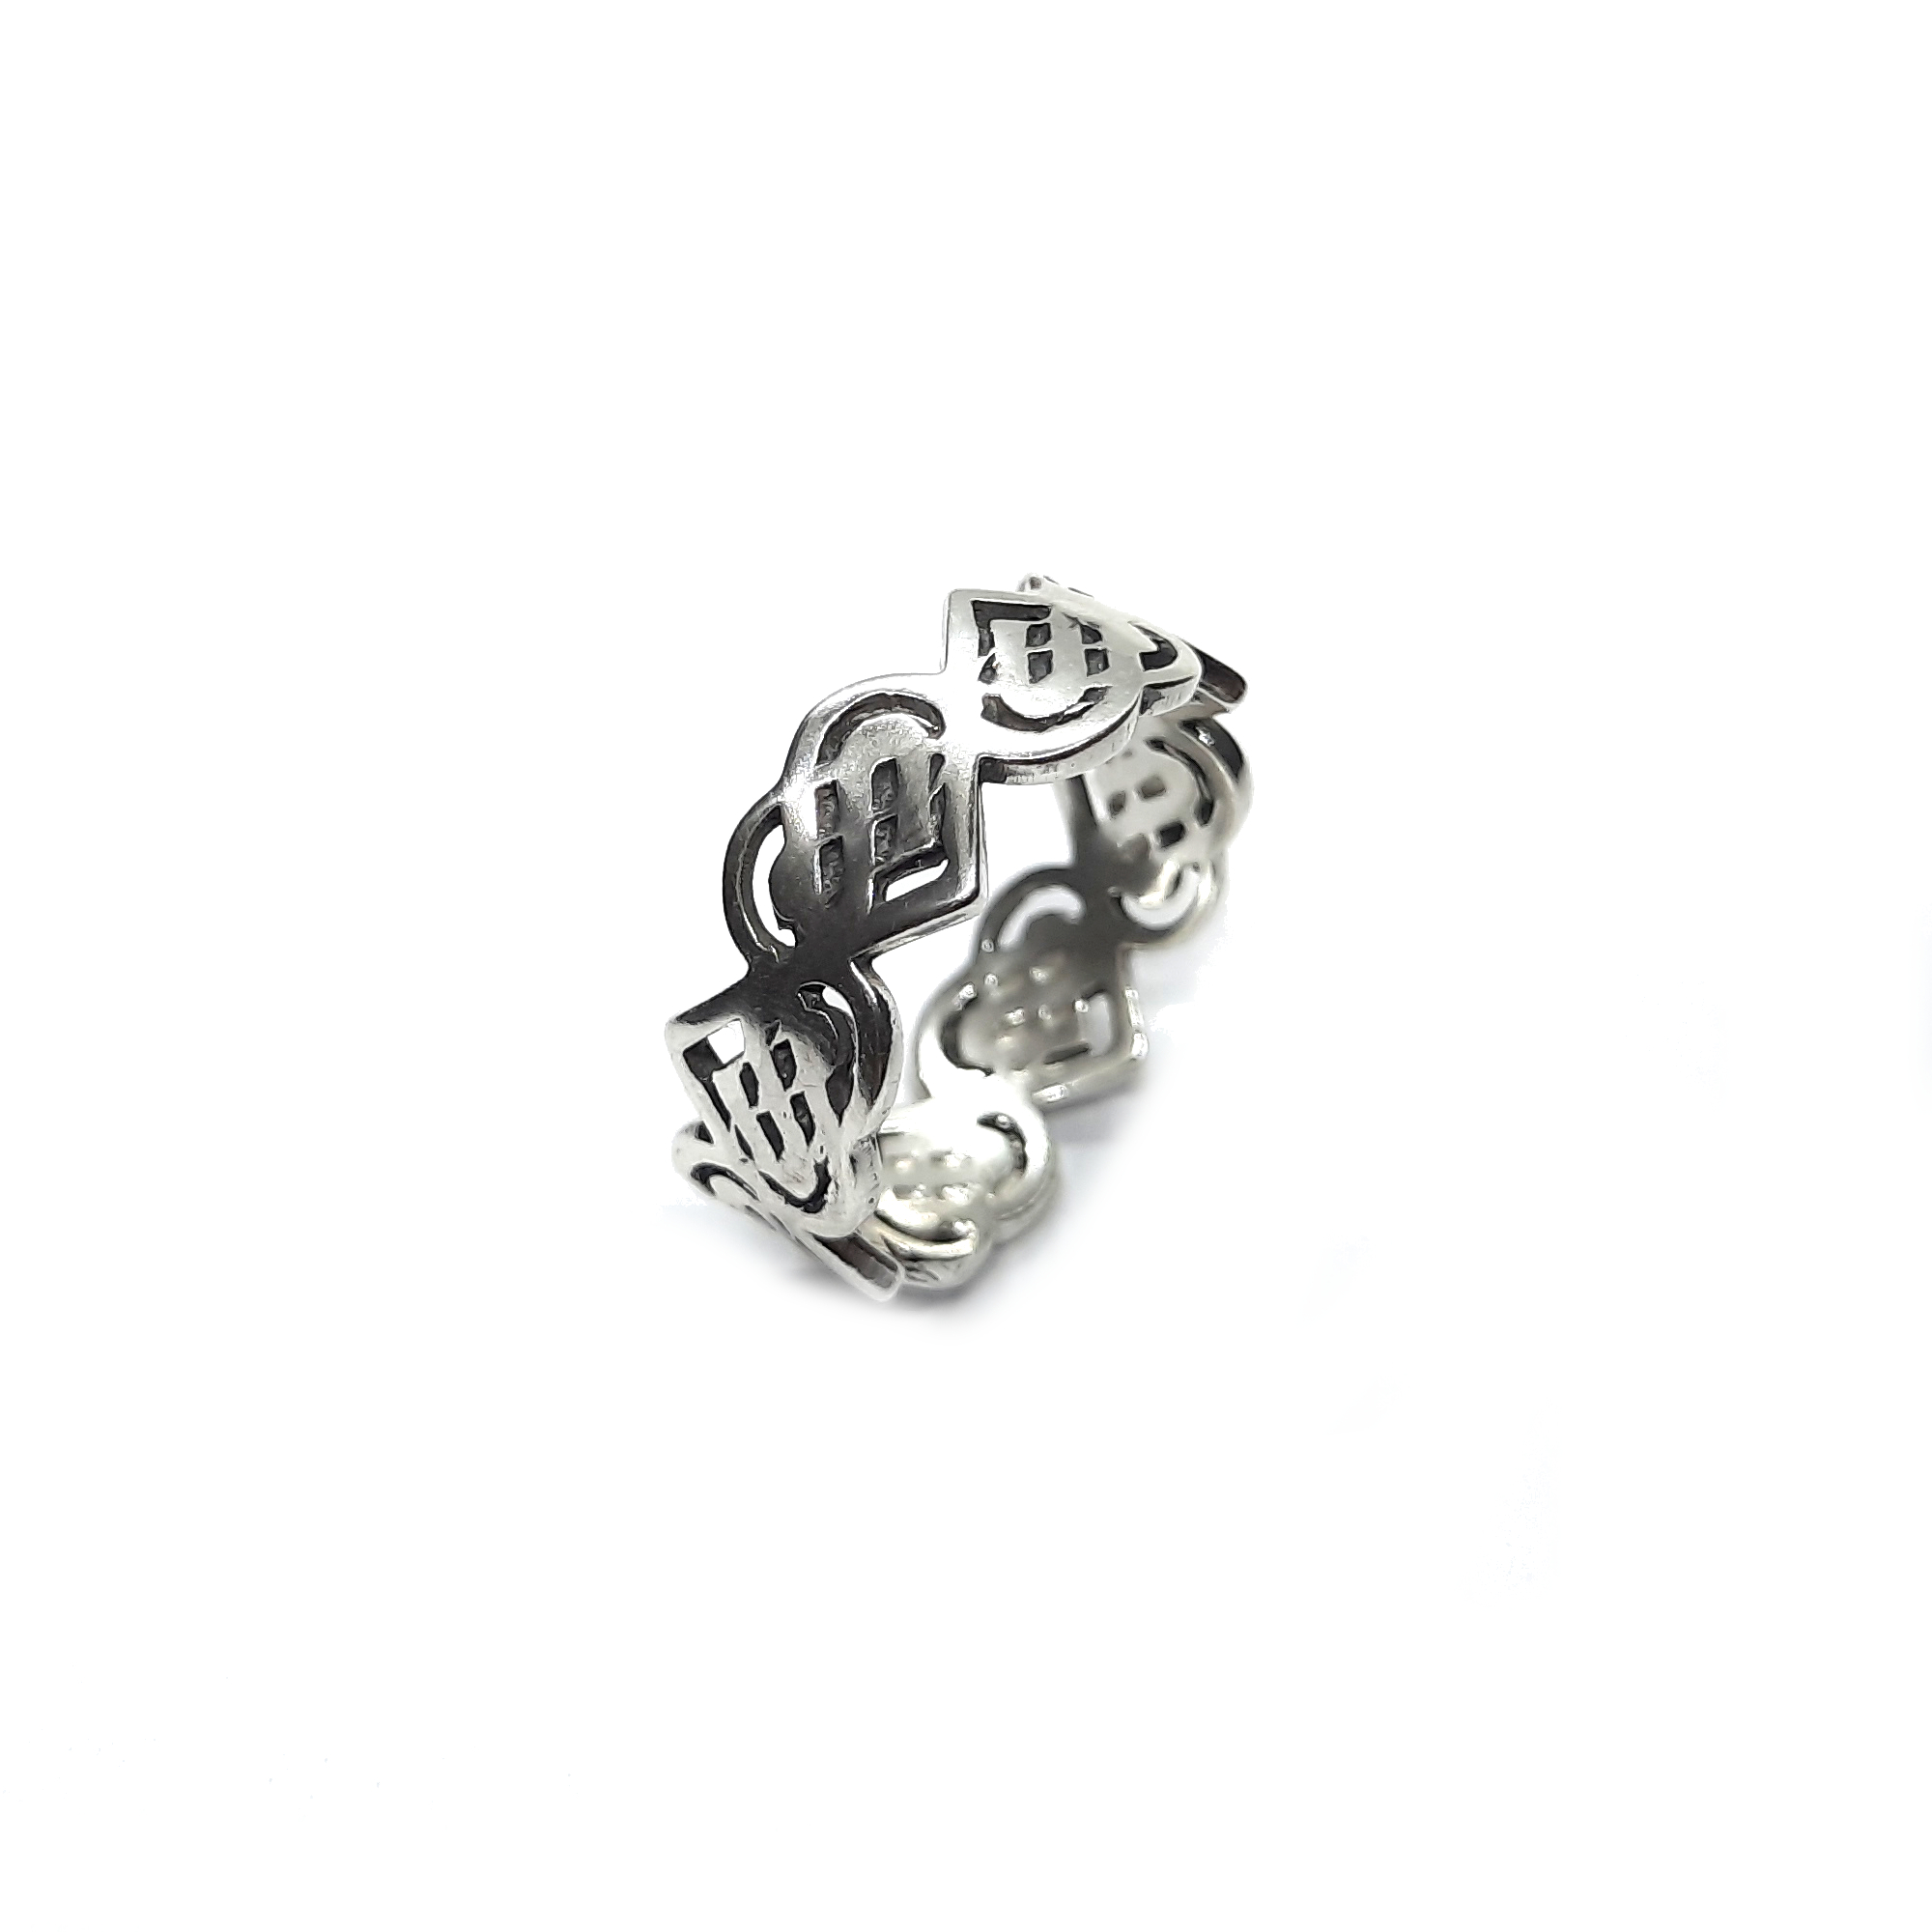 Silver ring - R002222